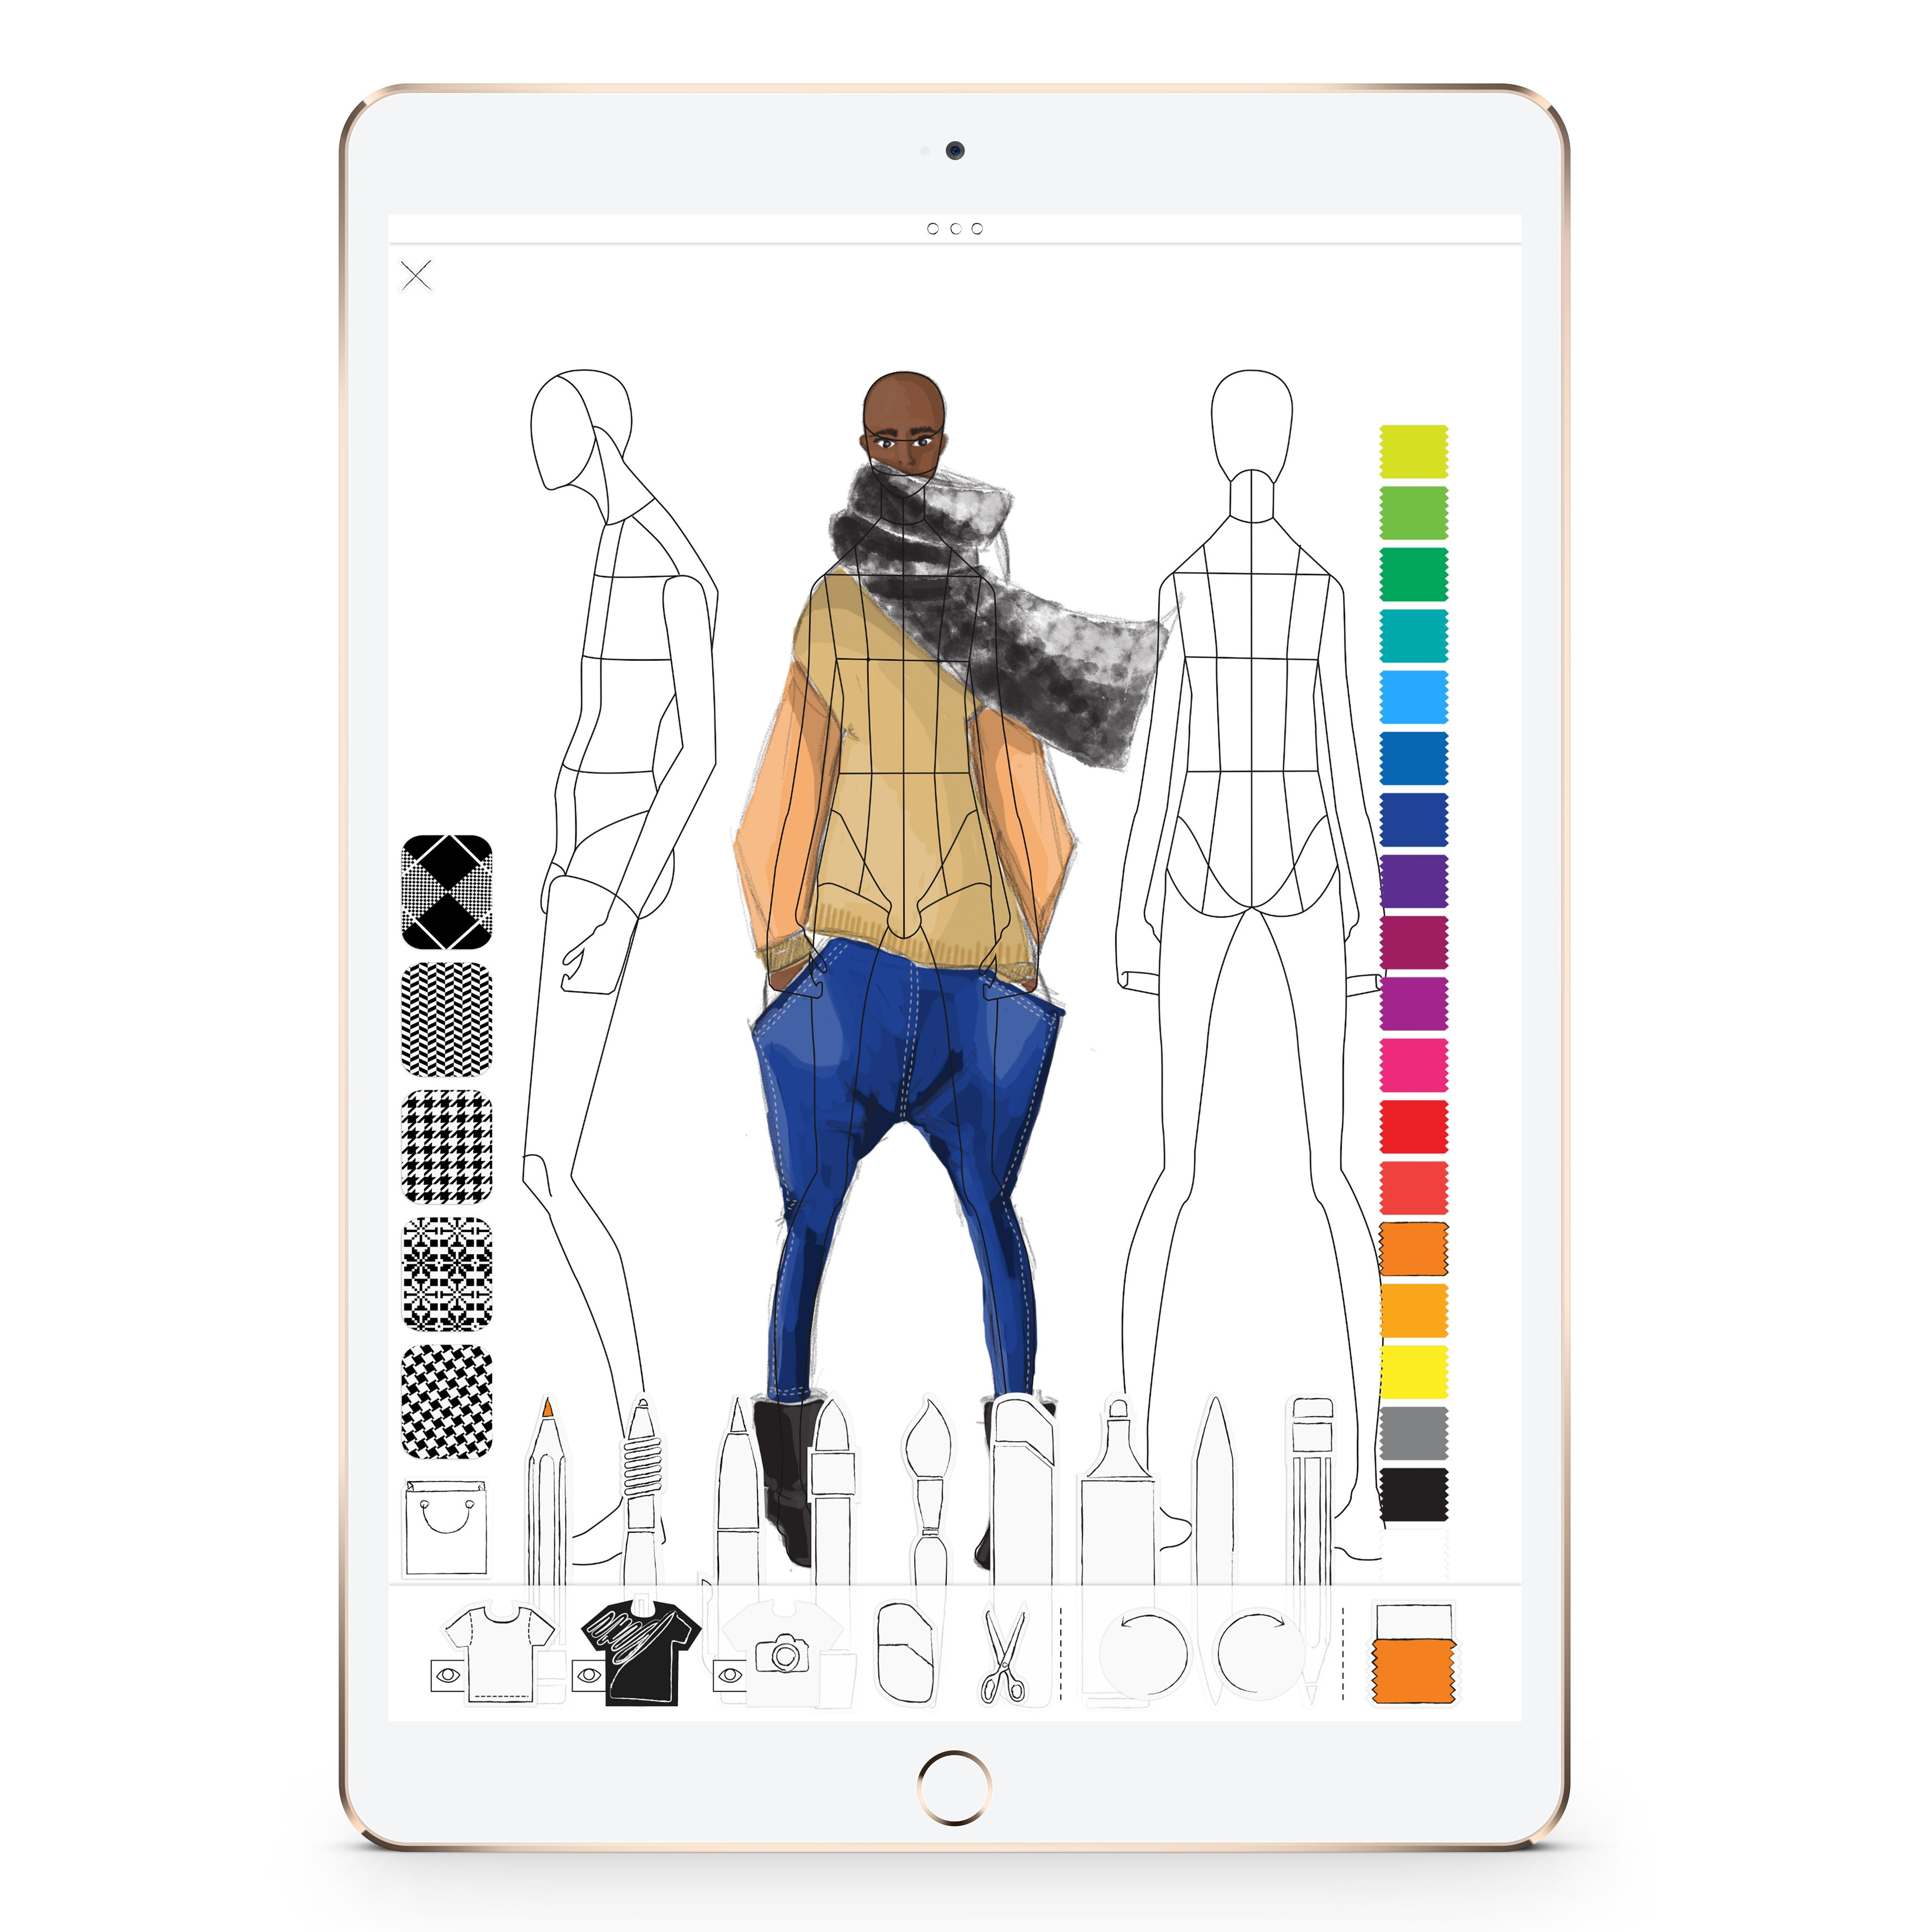 Pret A Template App Fashion Design App For Iphone And Ipad A New Way Of Thinking Fashion Sketchbook Tool Design Sketch Book Fashion Sketchbook